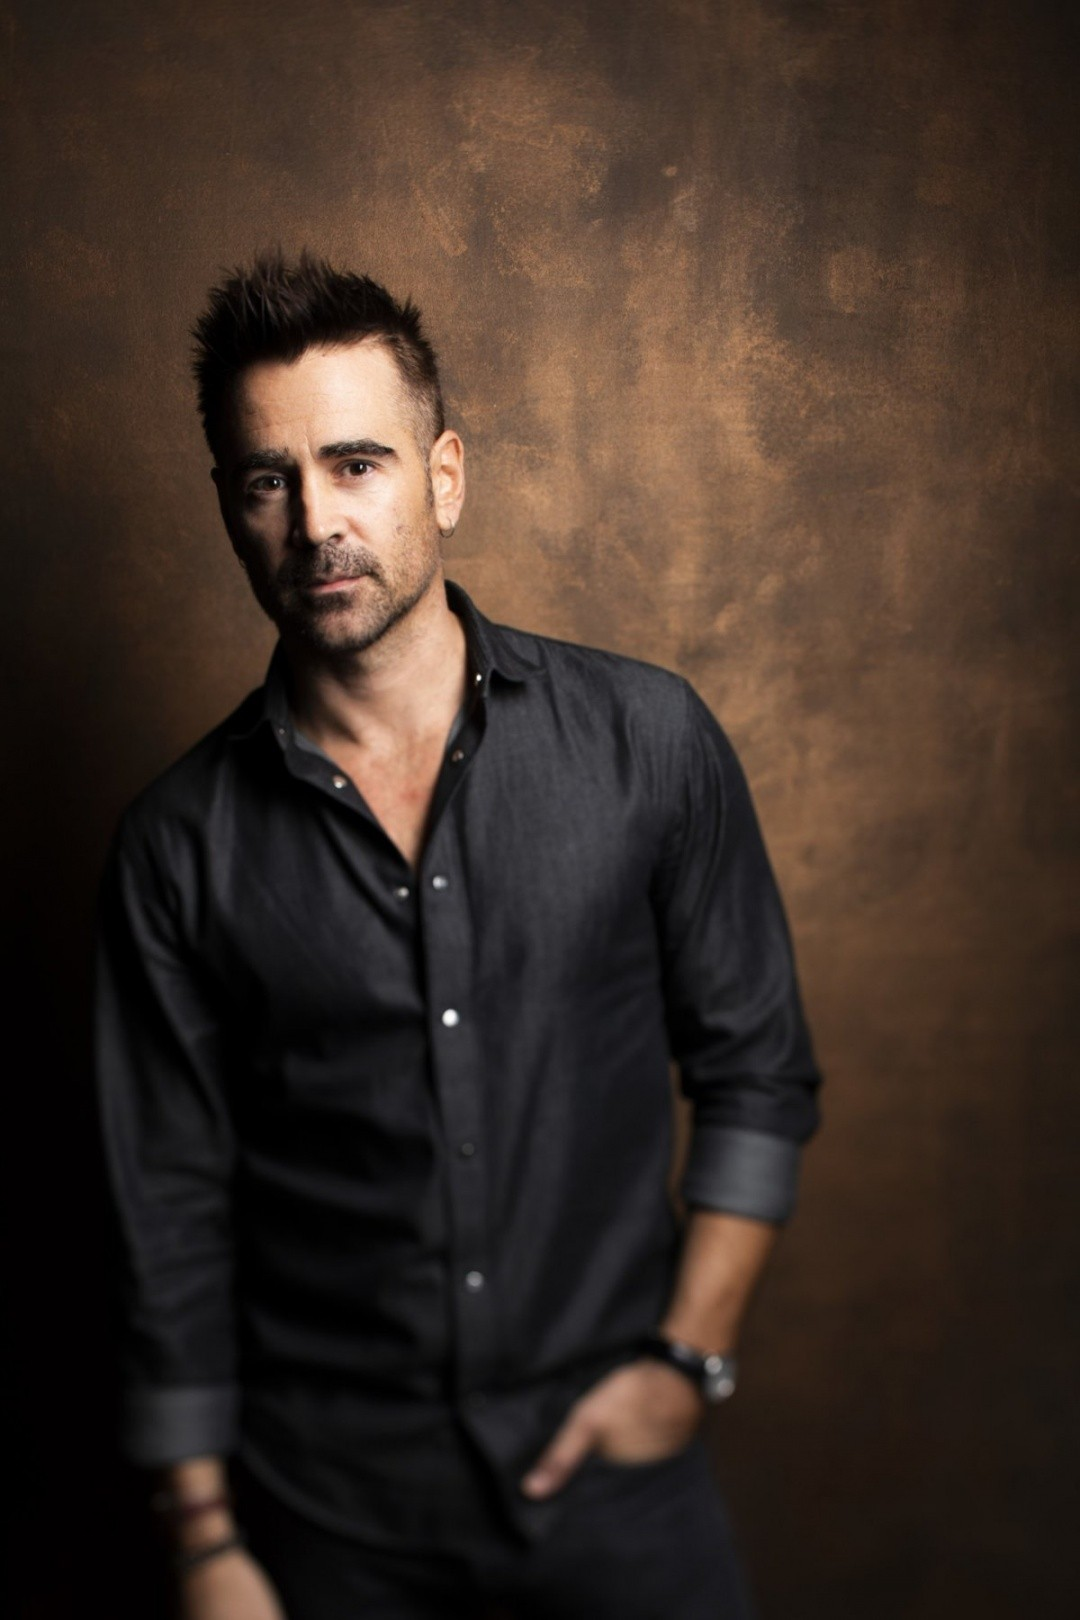 Colin Farell 10 Celebrities with the Extremely Gross Hygiene Practices